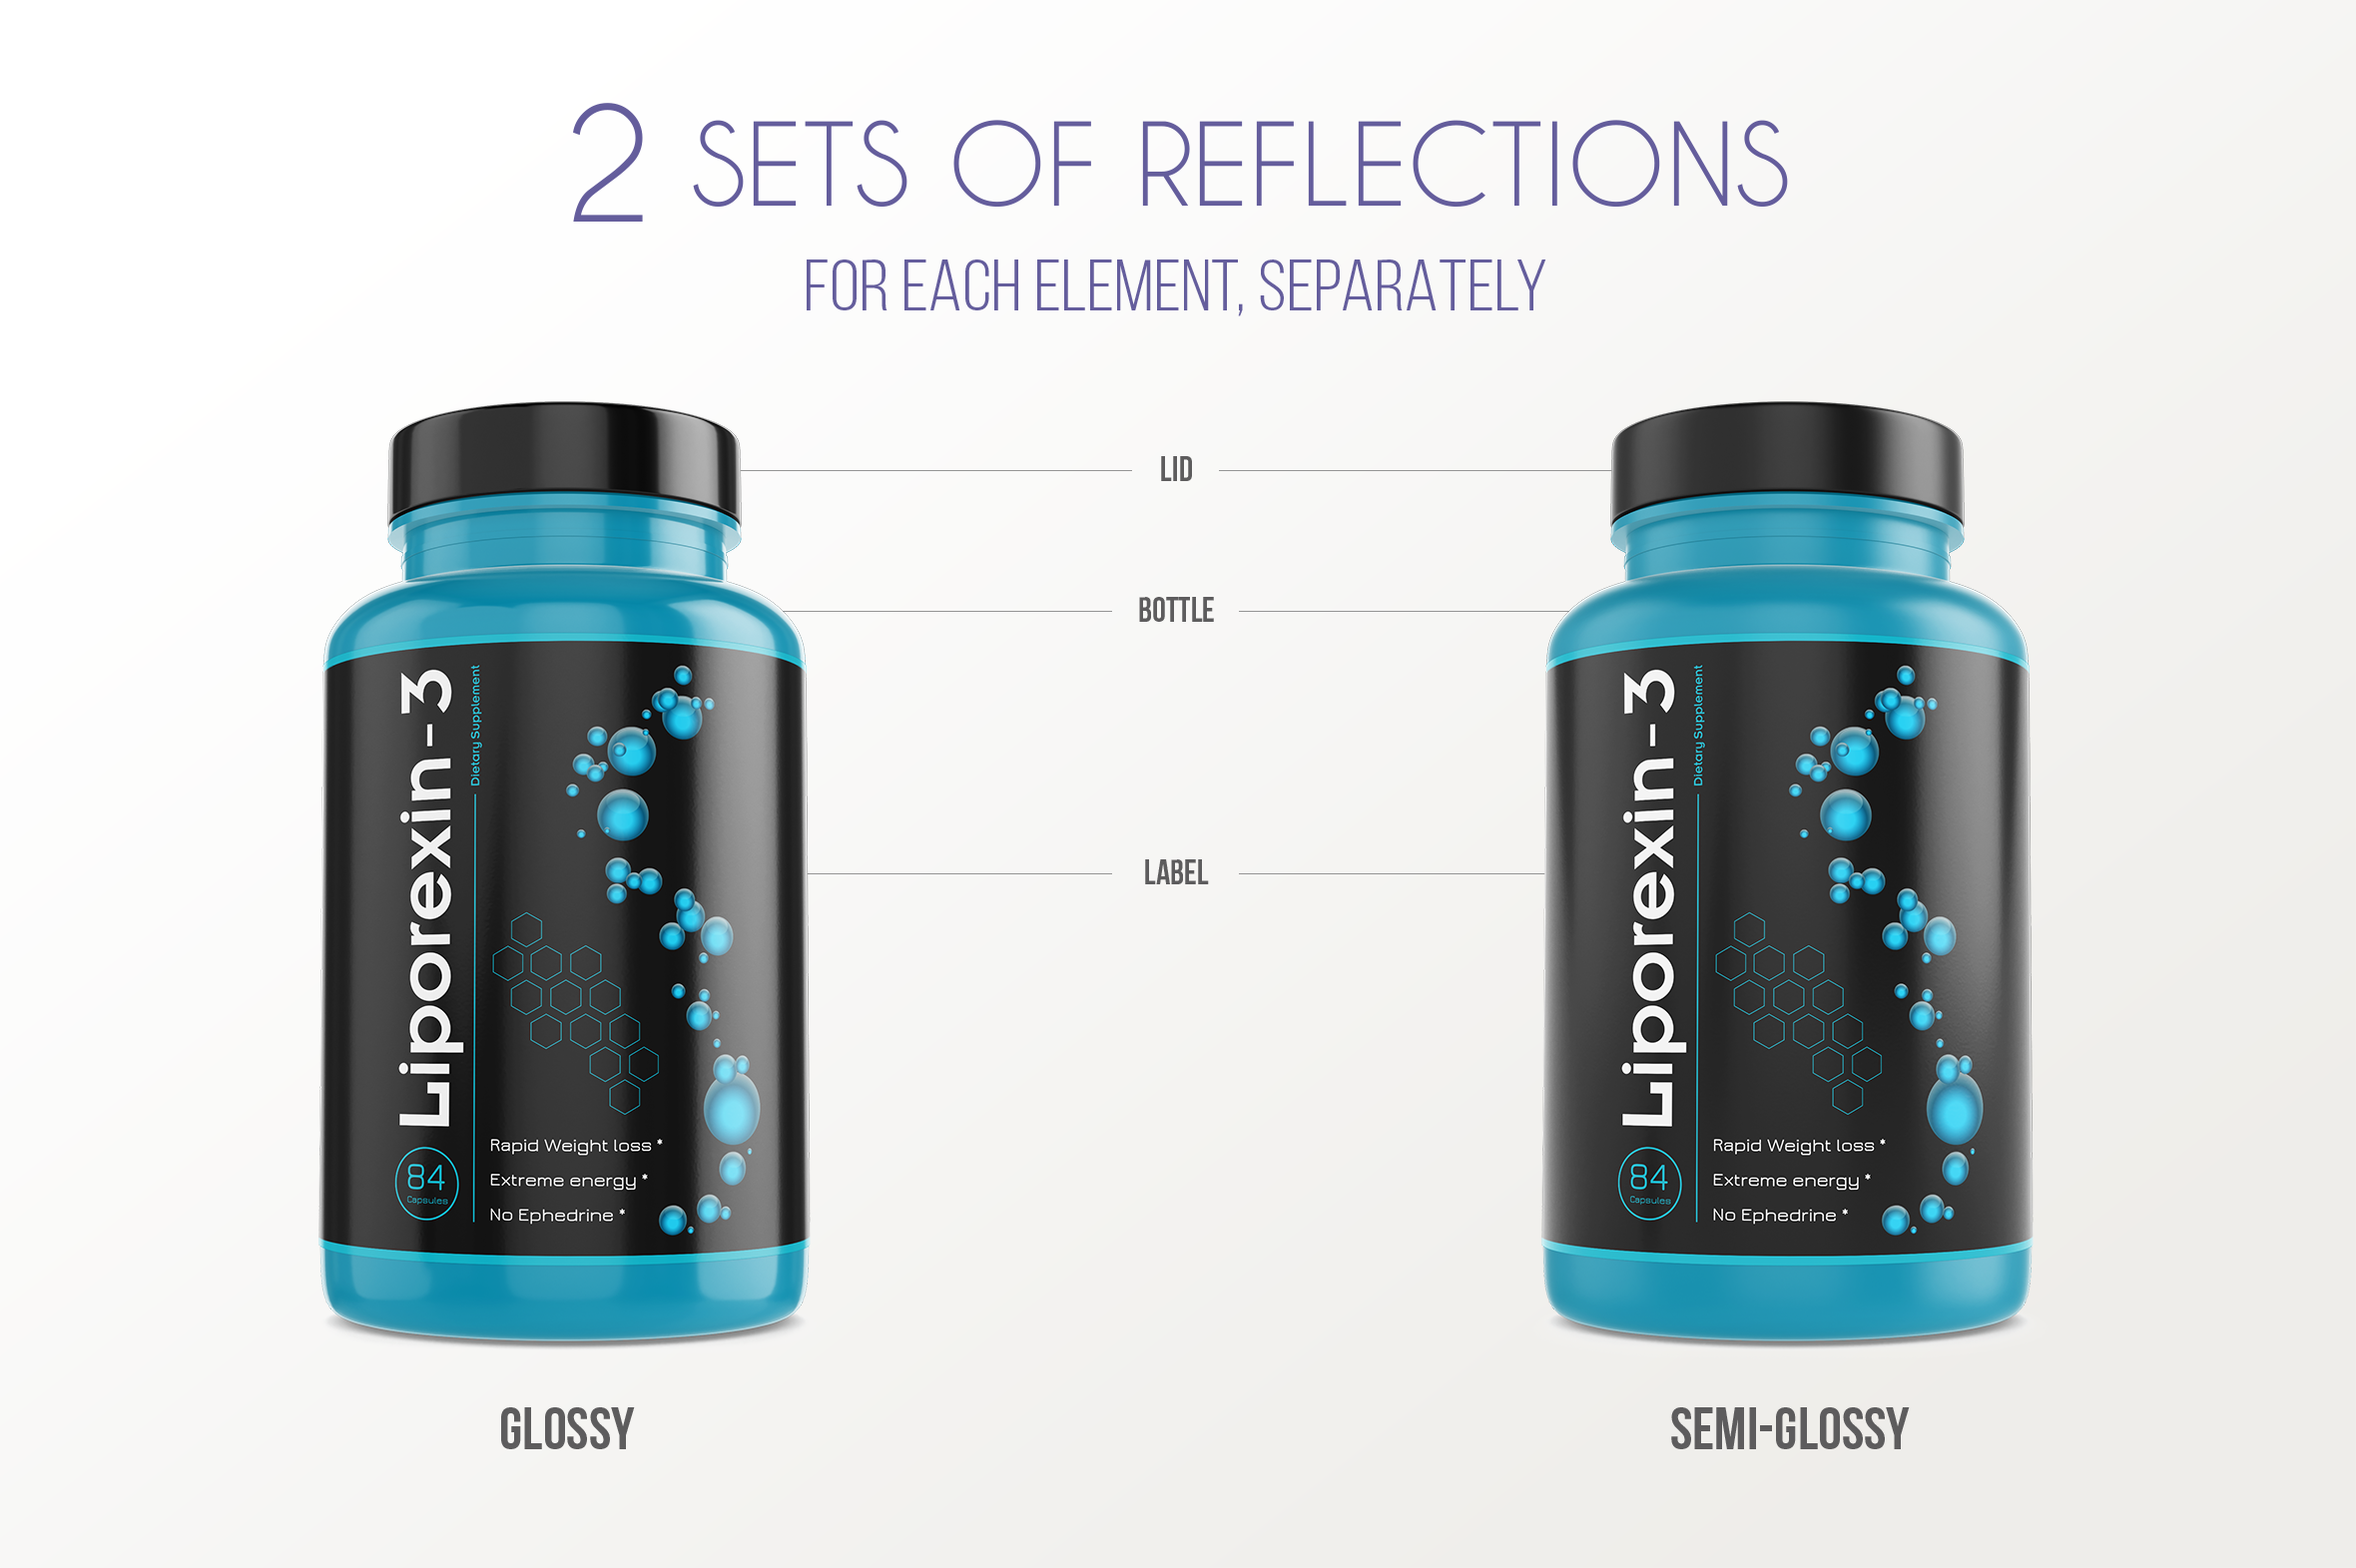 Dietary Supplement Mockup v. 1B example image 4